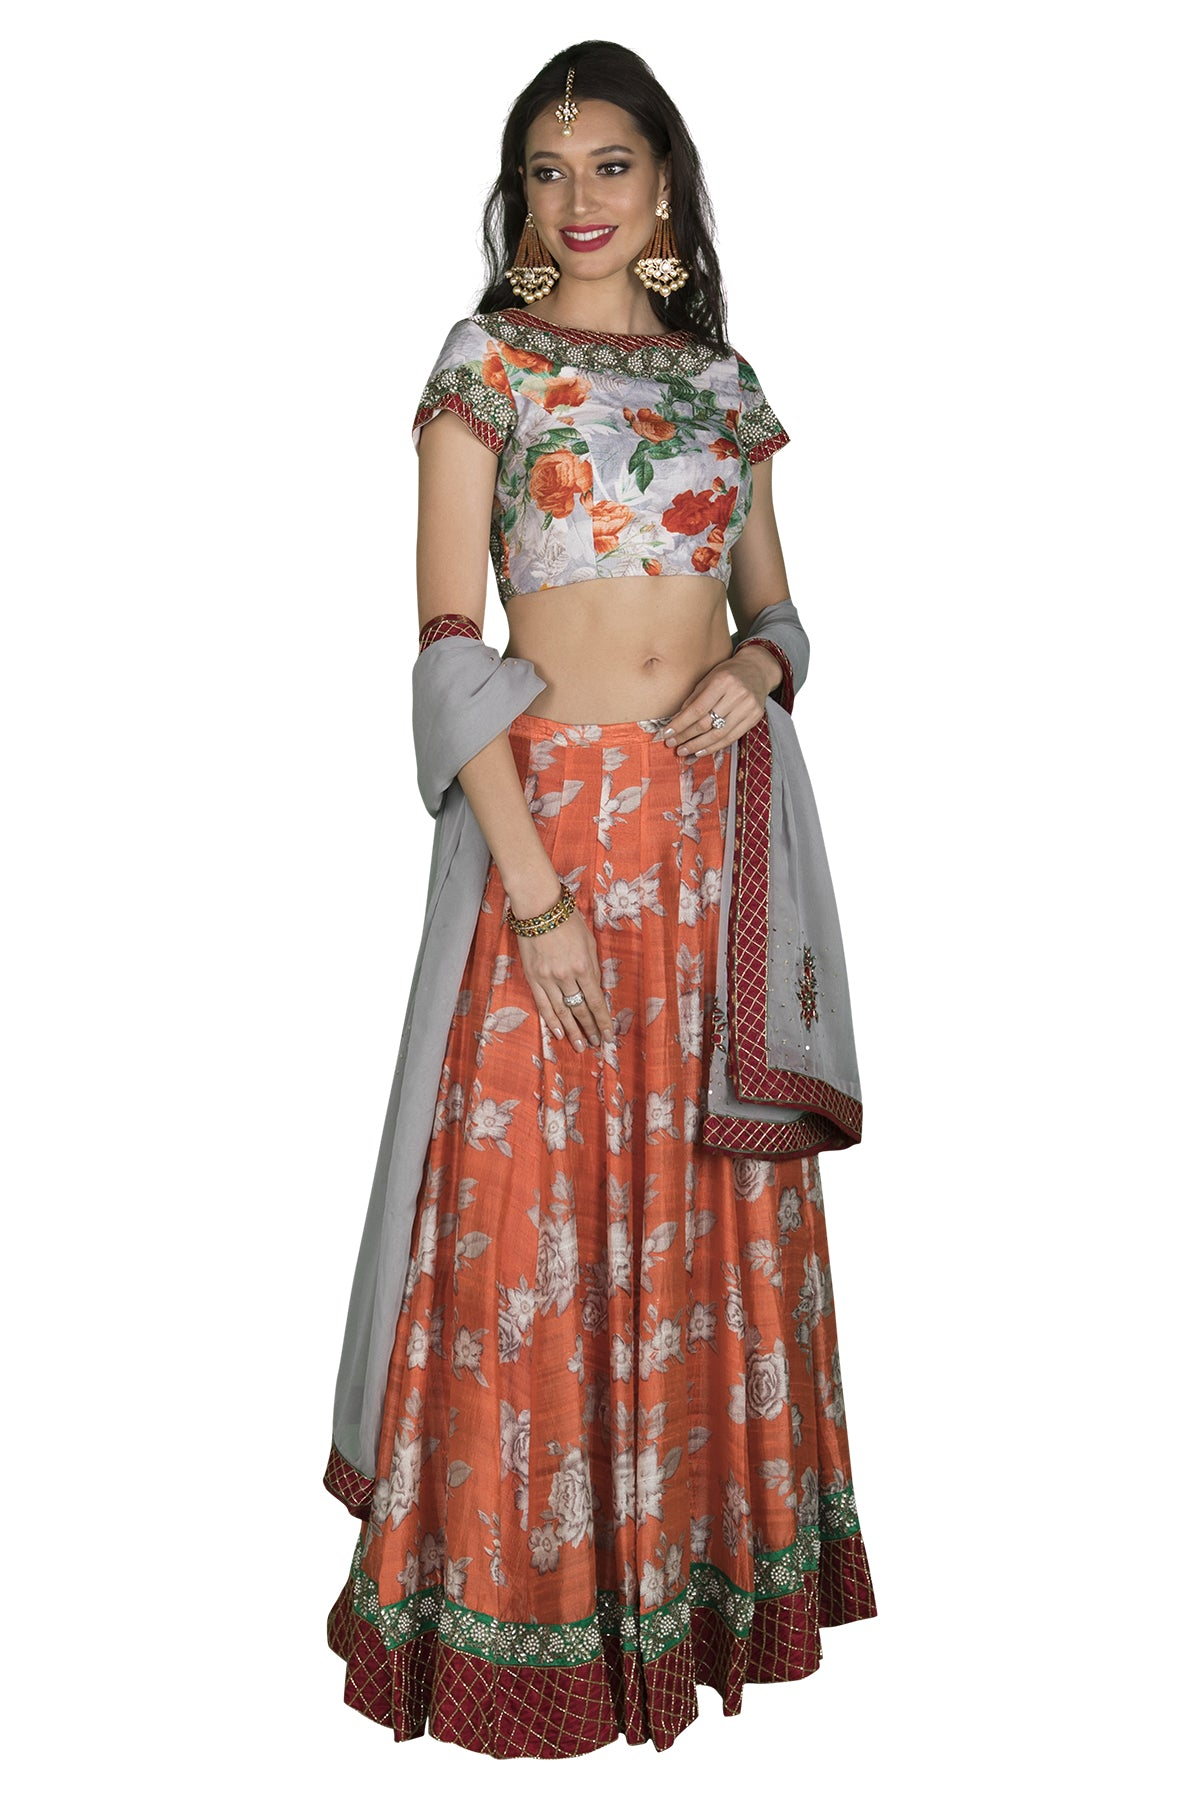 Grey blouse with pearl detailing and floral print. Orange skirt with red border.This outfit lets you stand out and gives you not only elegance but beauty as well.